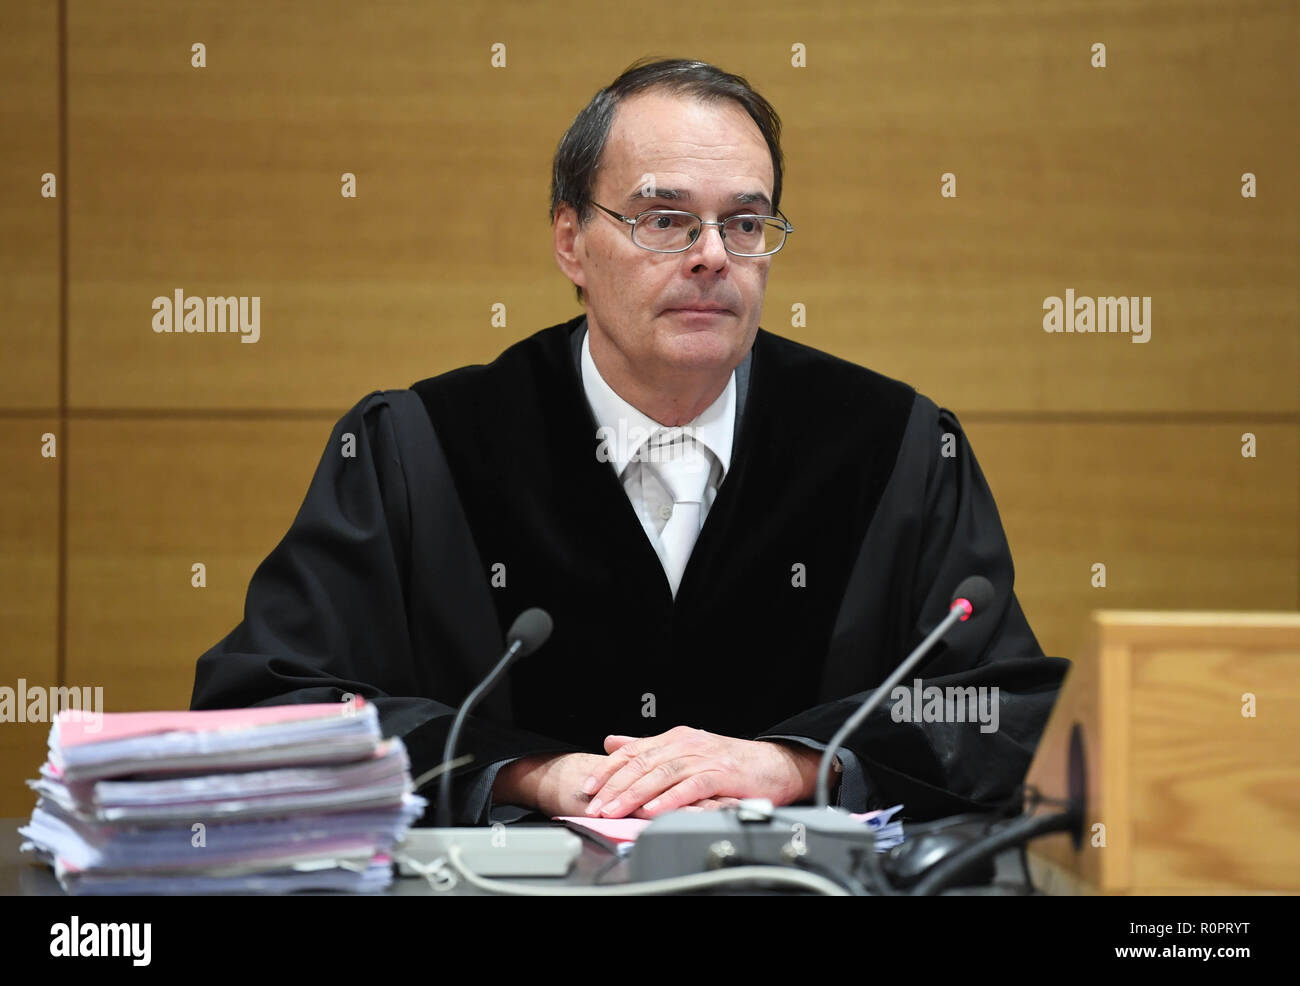 Heidelberg, Germany. 07th Nov, 2018. Christian Mühlhoff, judge at the Regional Court of Heidelberg, opens the trial for a false policeman. The accused, together with accomplices, is said to have taken a senior woman from Sinsheim for jewellery and valuables worth 300,000 euros as a false policeman. Credit: Uli Deck/dpa/Alamy Live News - Stock Image